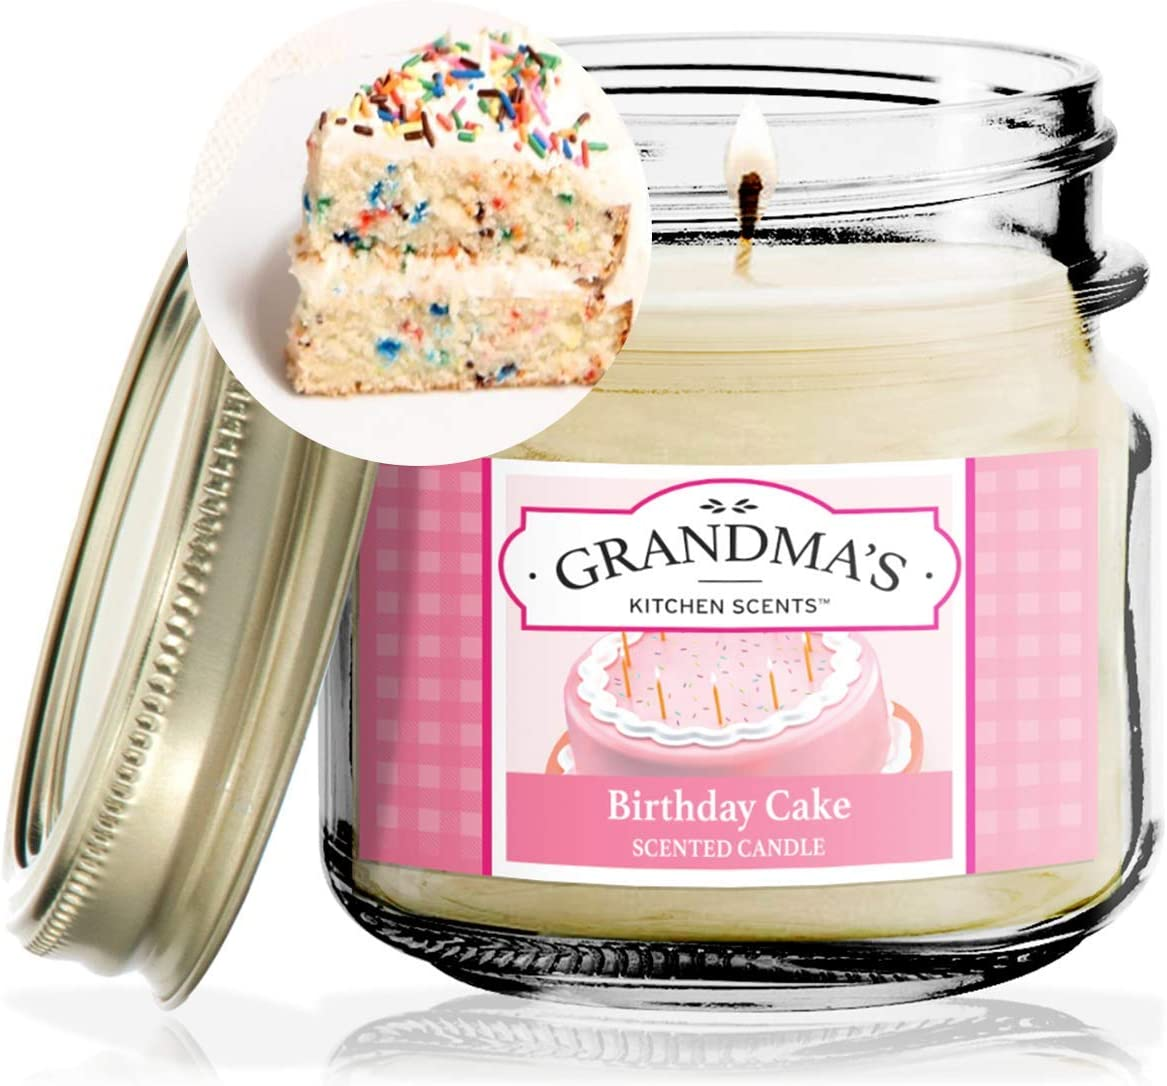 Birthday Cake Scented Candles for Home | Non Toxic Long Lasting Soy Candles | Delicious Scent | 8 oz Mason Jar | Hand Made in The USA